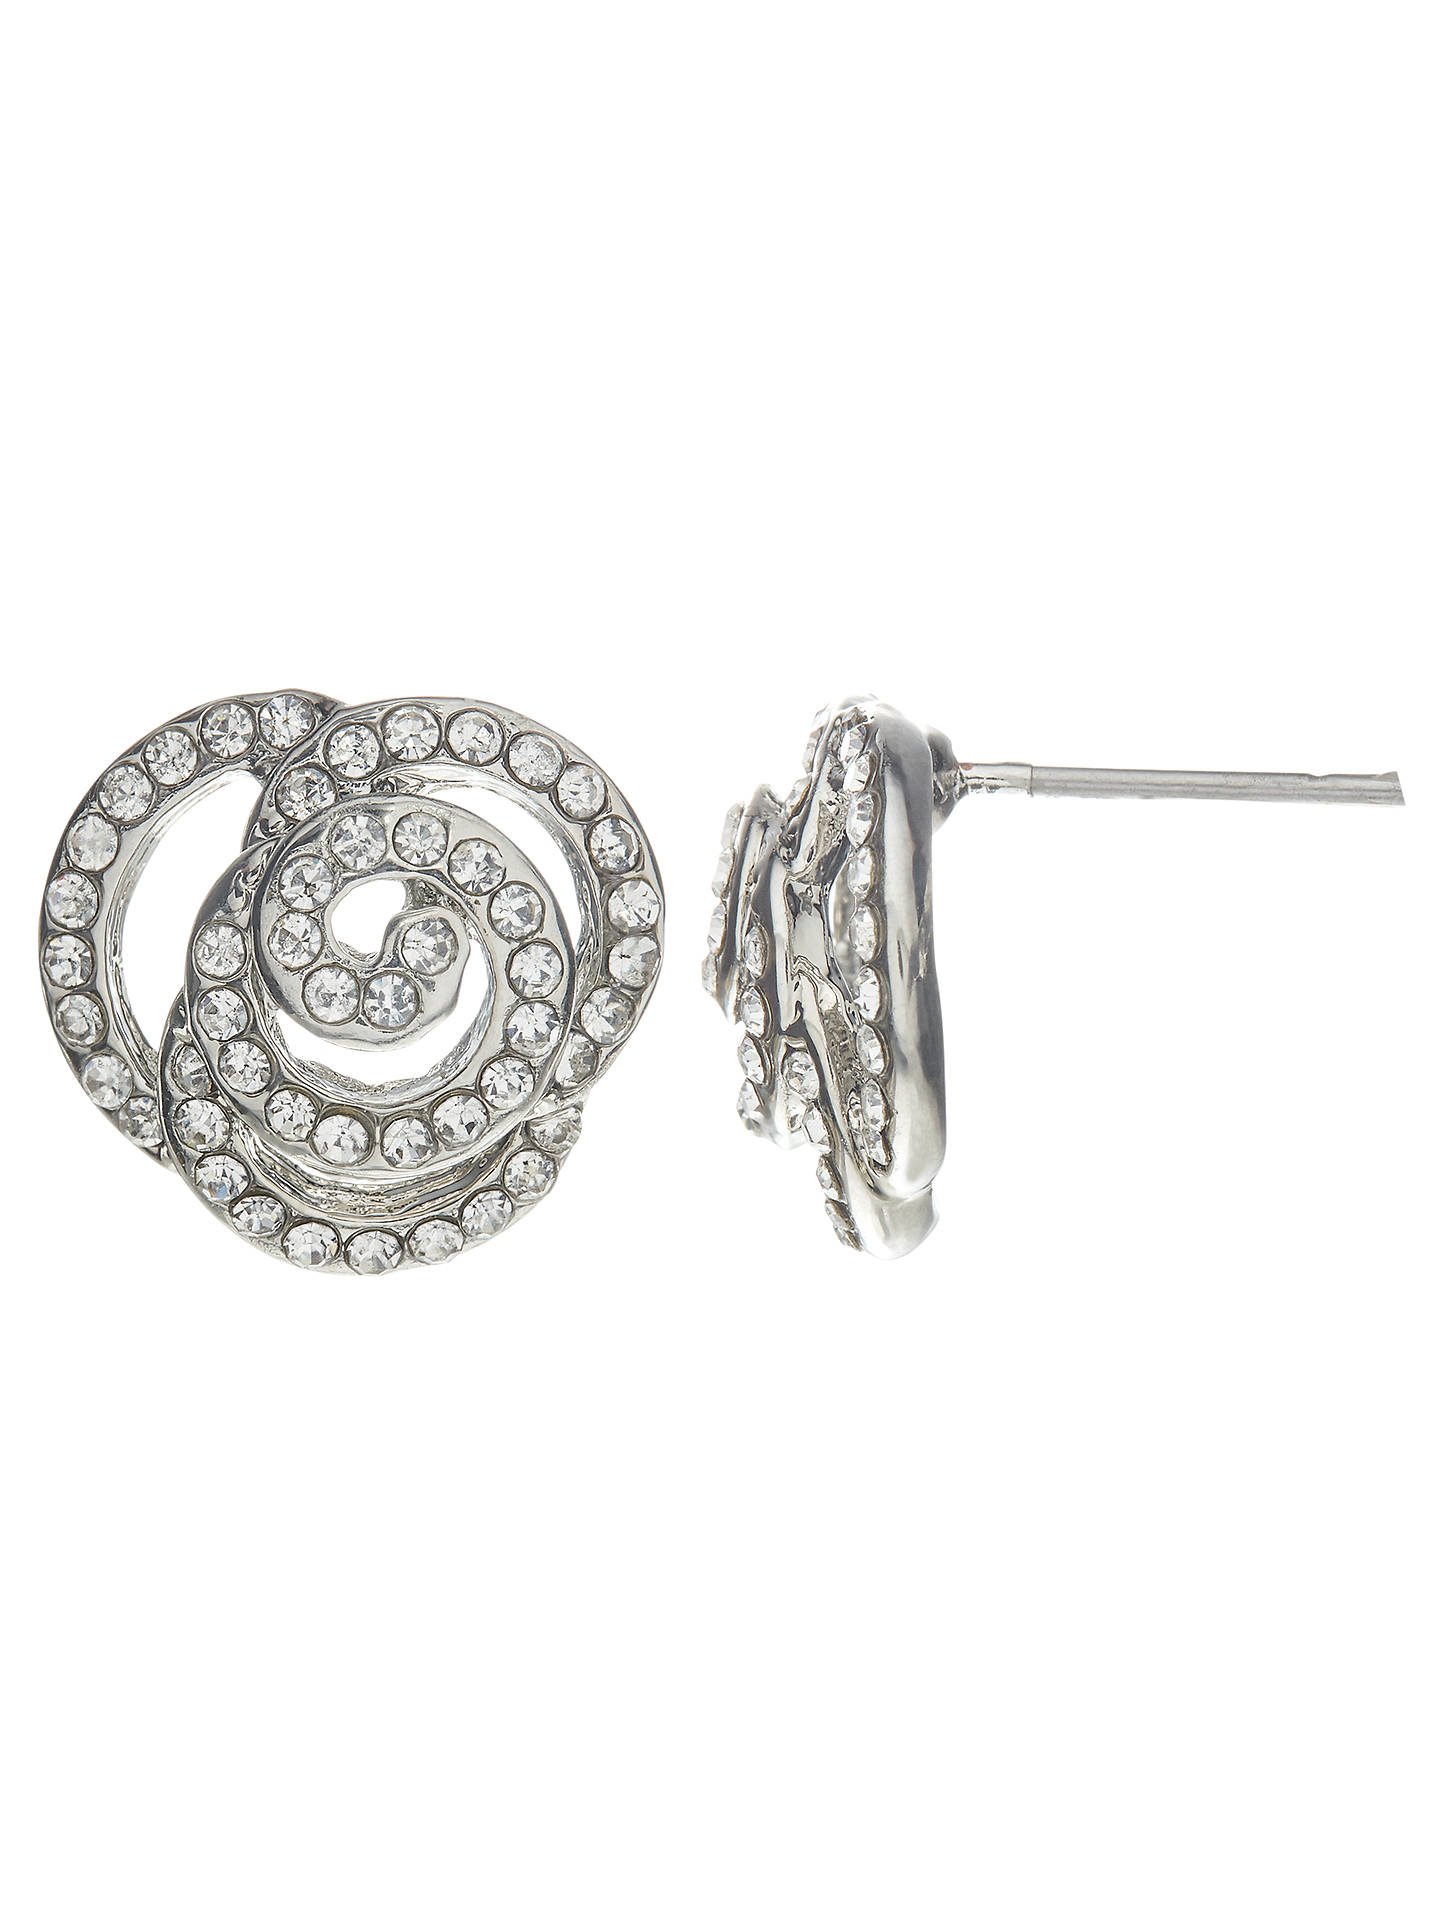 BuyJohn Lewis & Partners Rose Stud Earrings, Silver Online at johnlewis.com